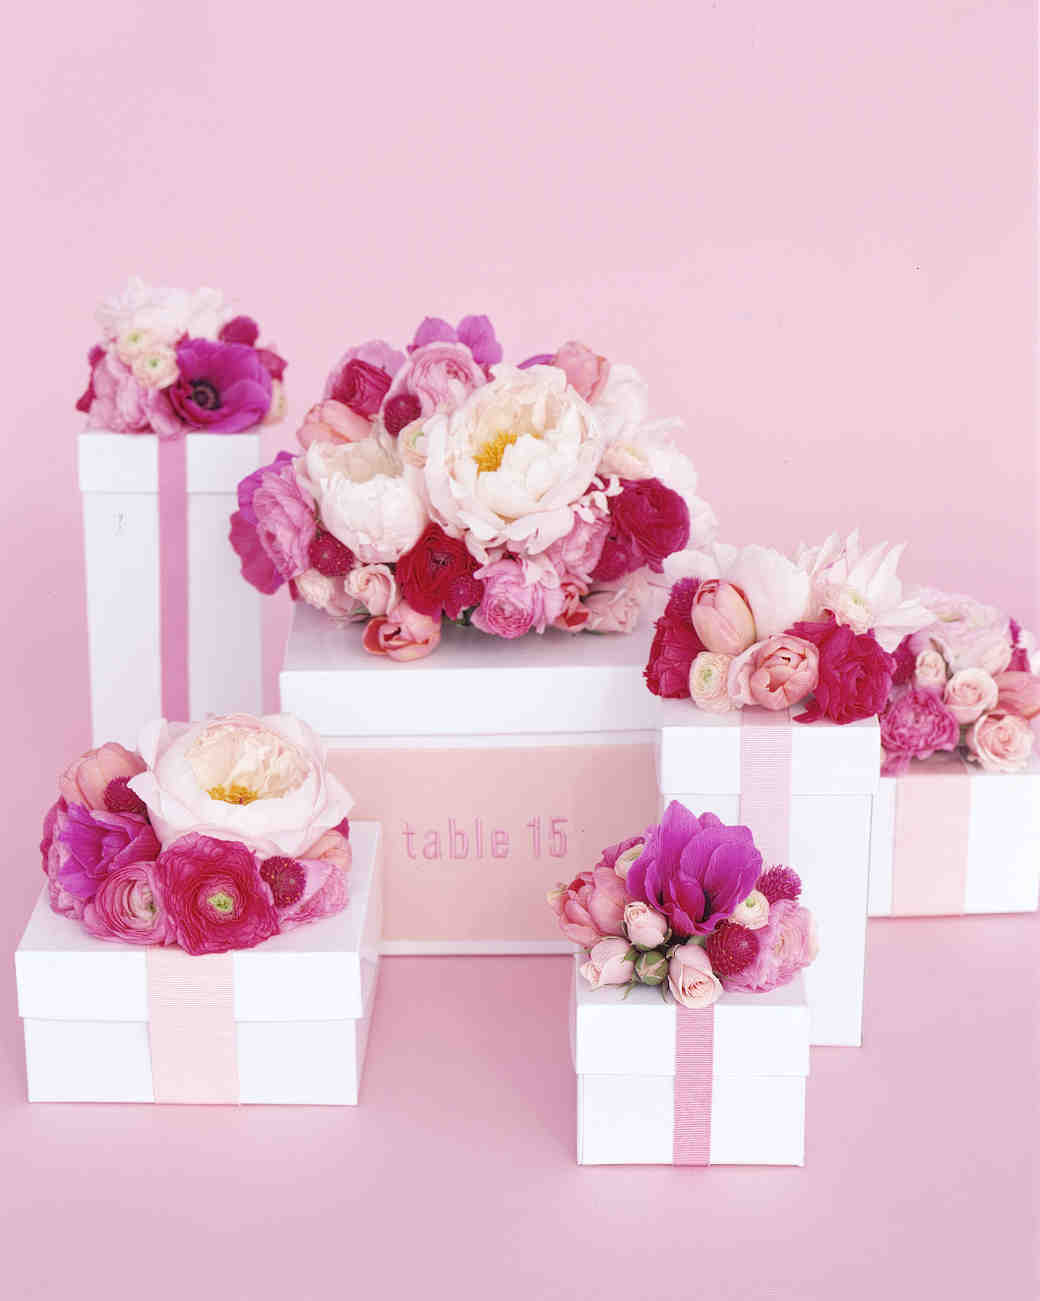 diy-floral-favors-pink-flowers-boxes-centerpiece-sp02-0615.jpg